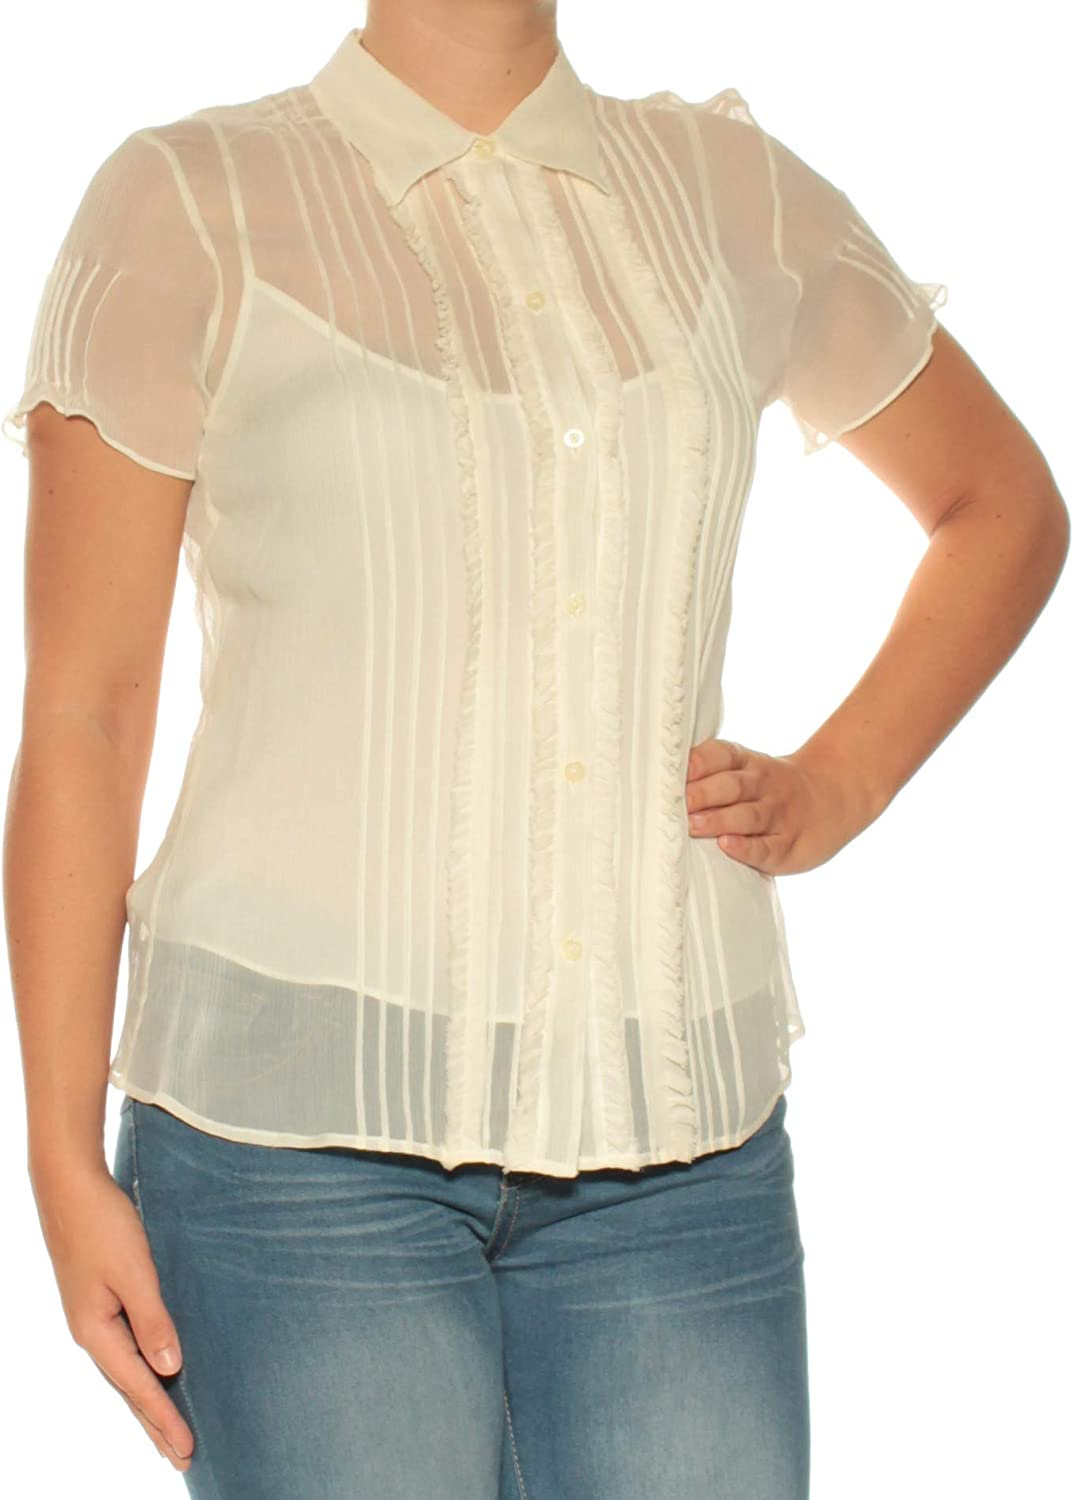 Ralph Lauren Womens Ivory Pleated Ruffled Short Sleeve Collared Button Up Top US Size  4